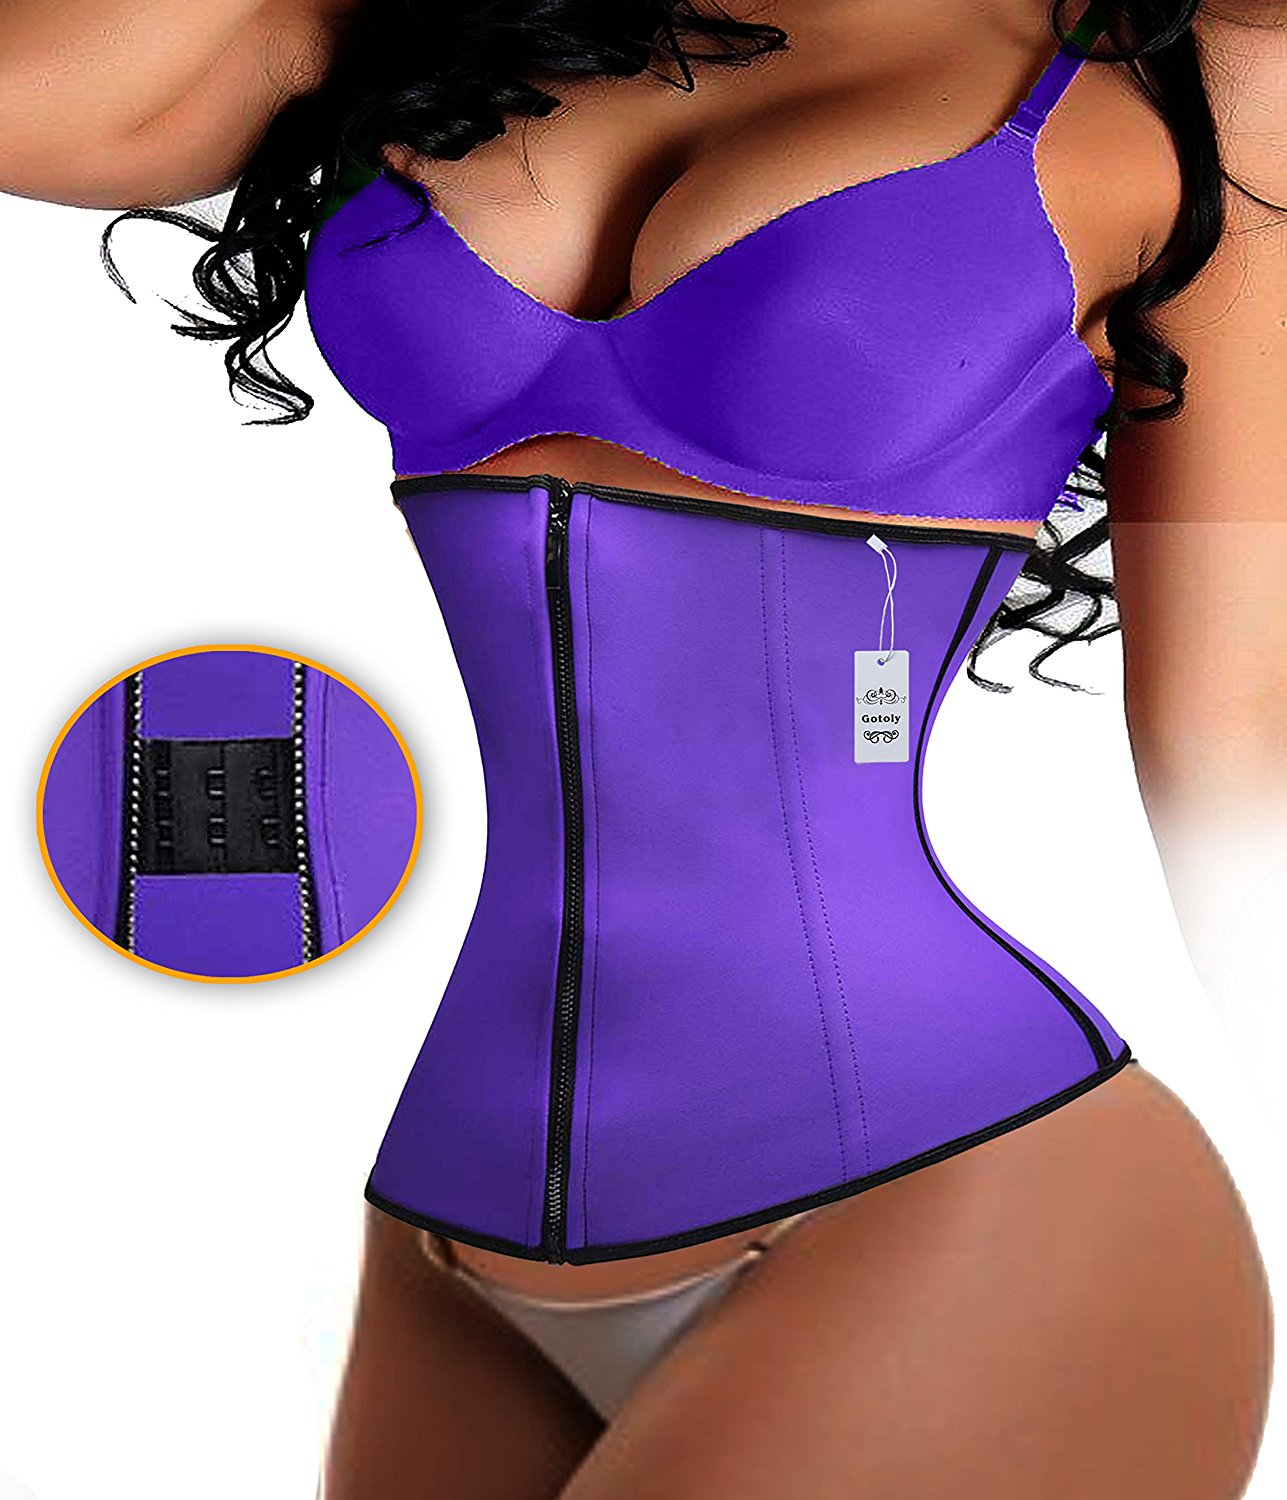 2312c976c7 Gotoly Latex Zipper With Hooks Waist Trainer Fitness Body Shaper For  Hourglass